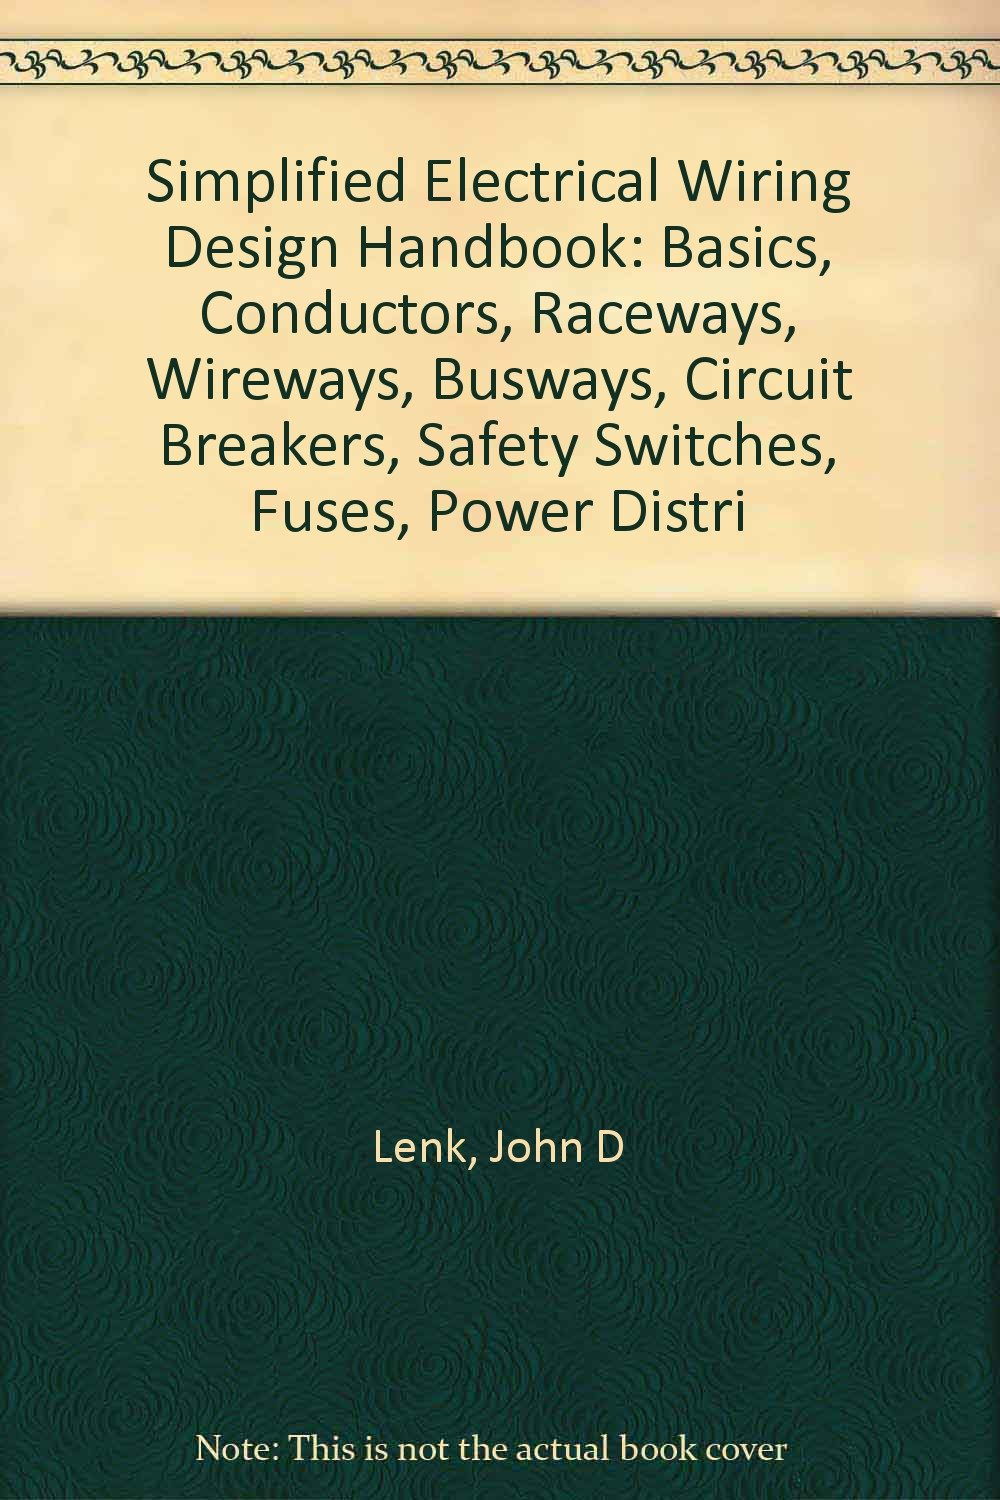 Simplified Electrical Wiring Design Handbook Basics Conductors Book Raceways Wireways Busways Circuit Breakers Safety Switches Fuses Power Distri